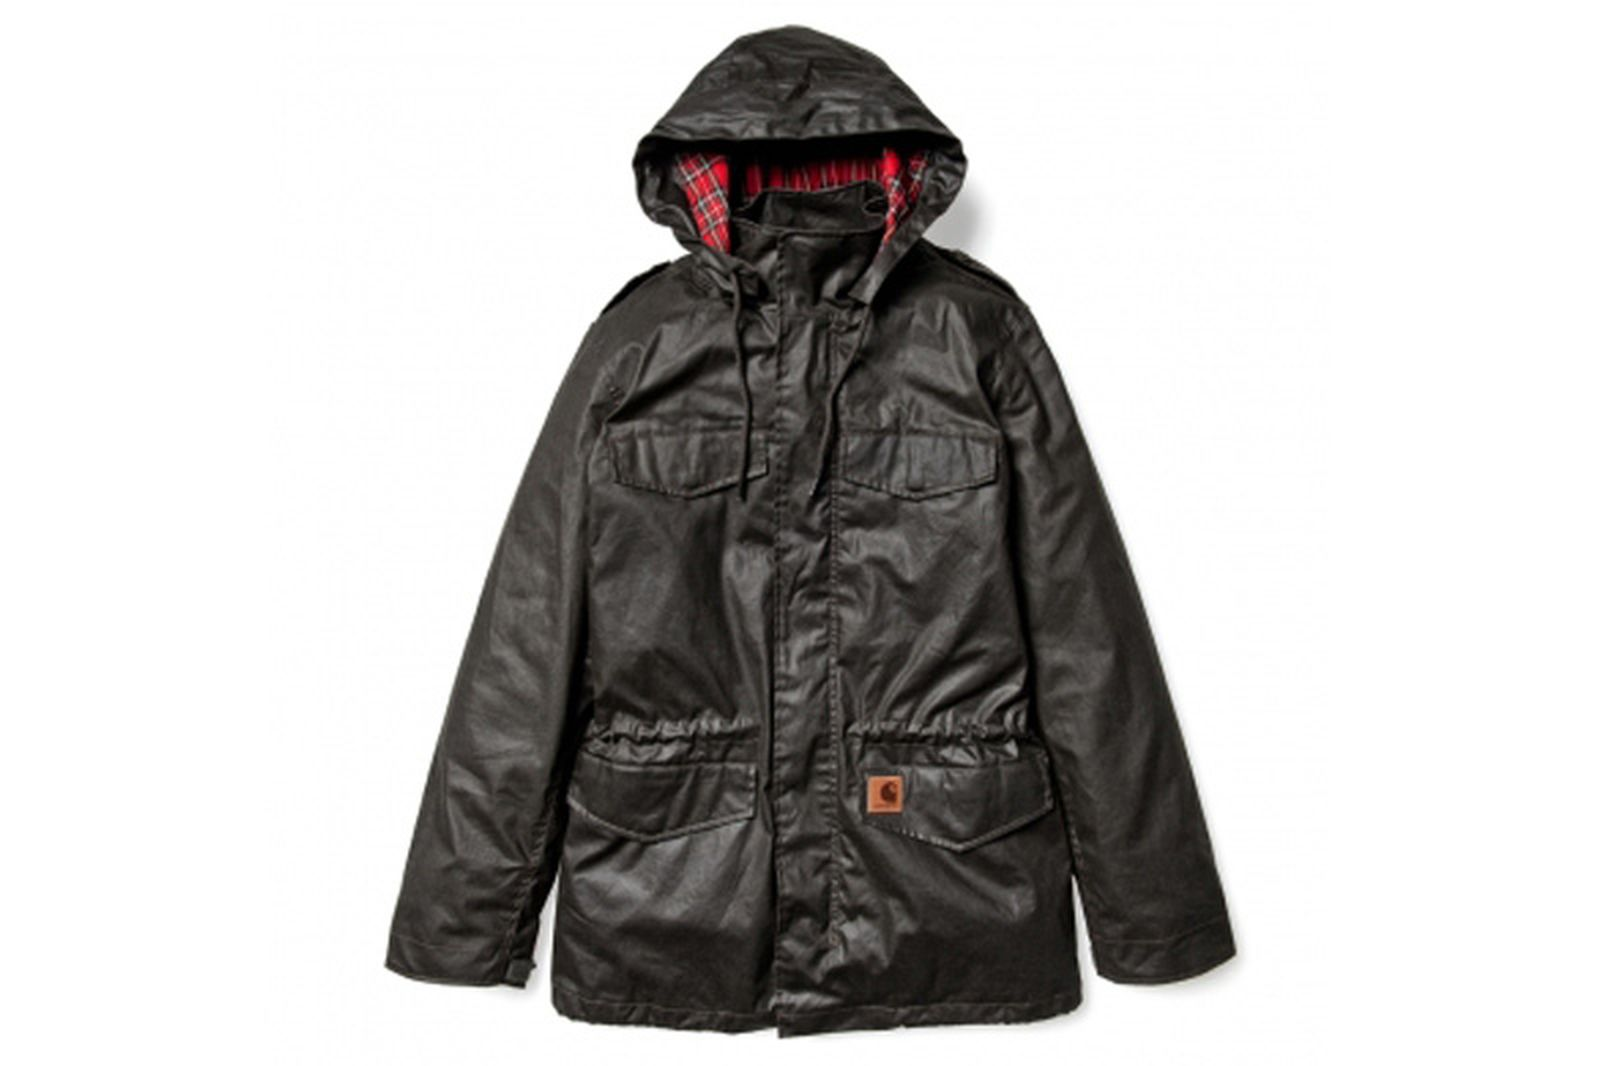 Carhartt-Columbia-Coat-Waxed-Jacket